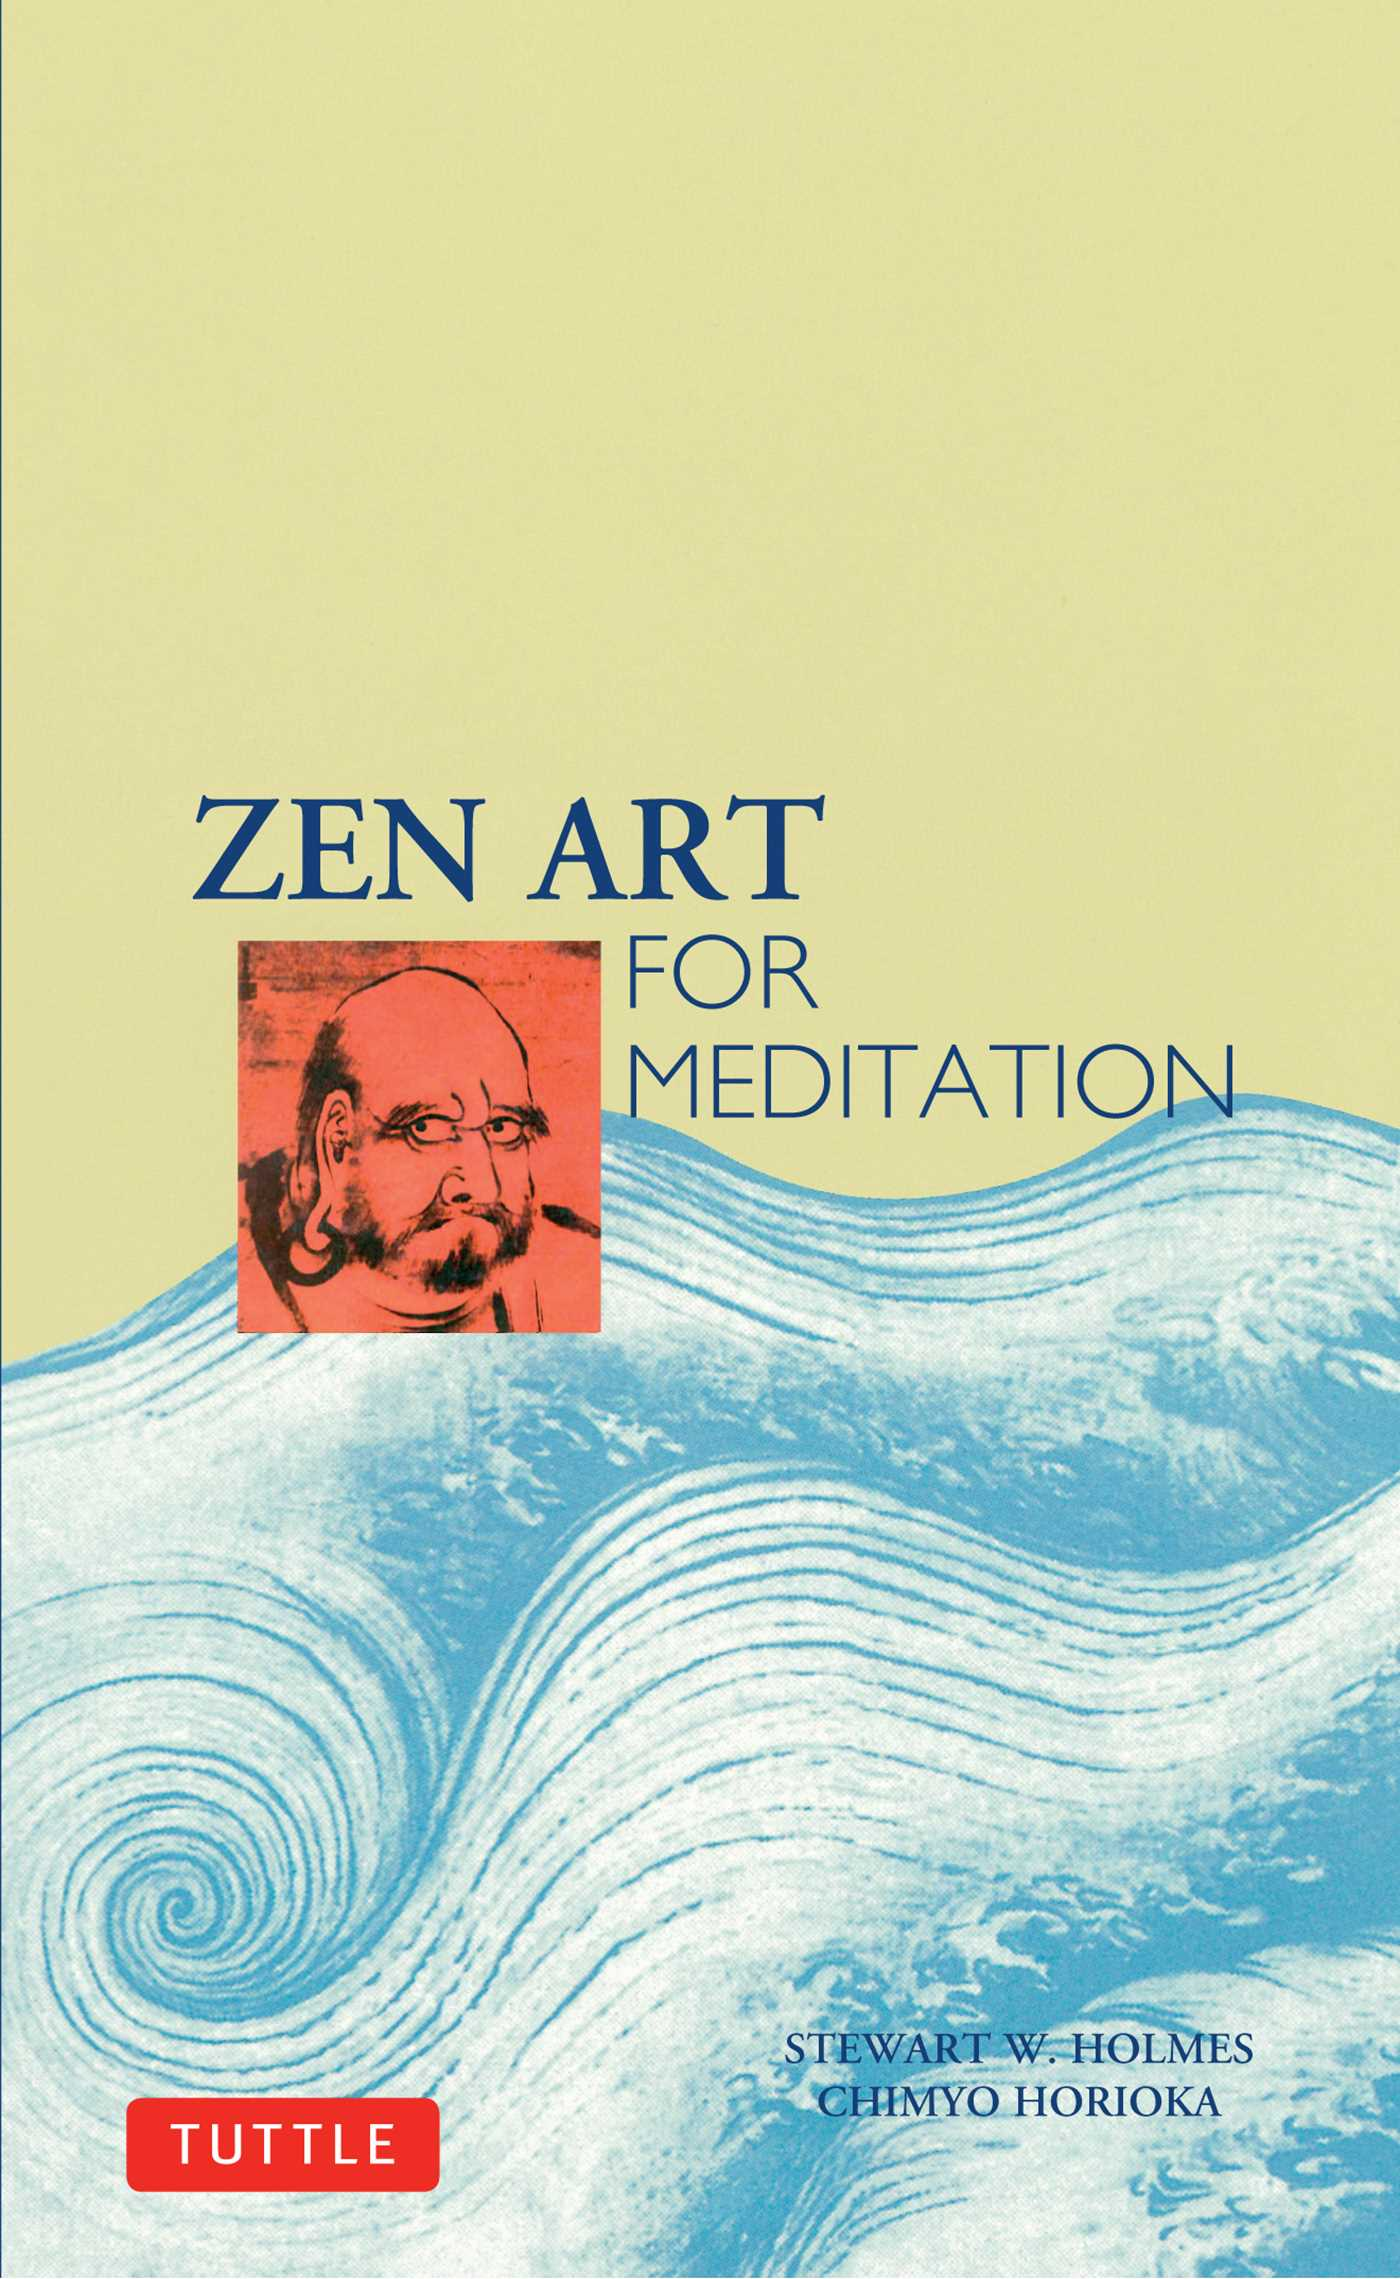 Zen art for meditation 9780804812559 hr